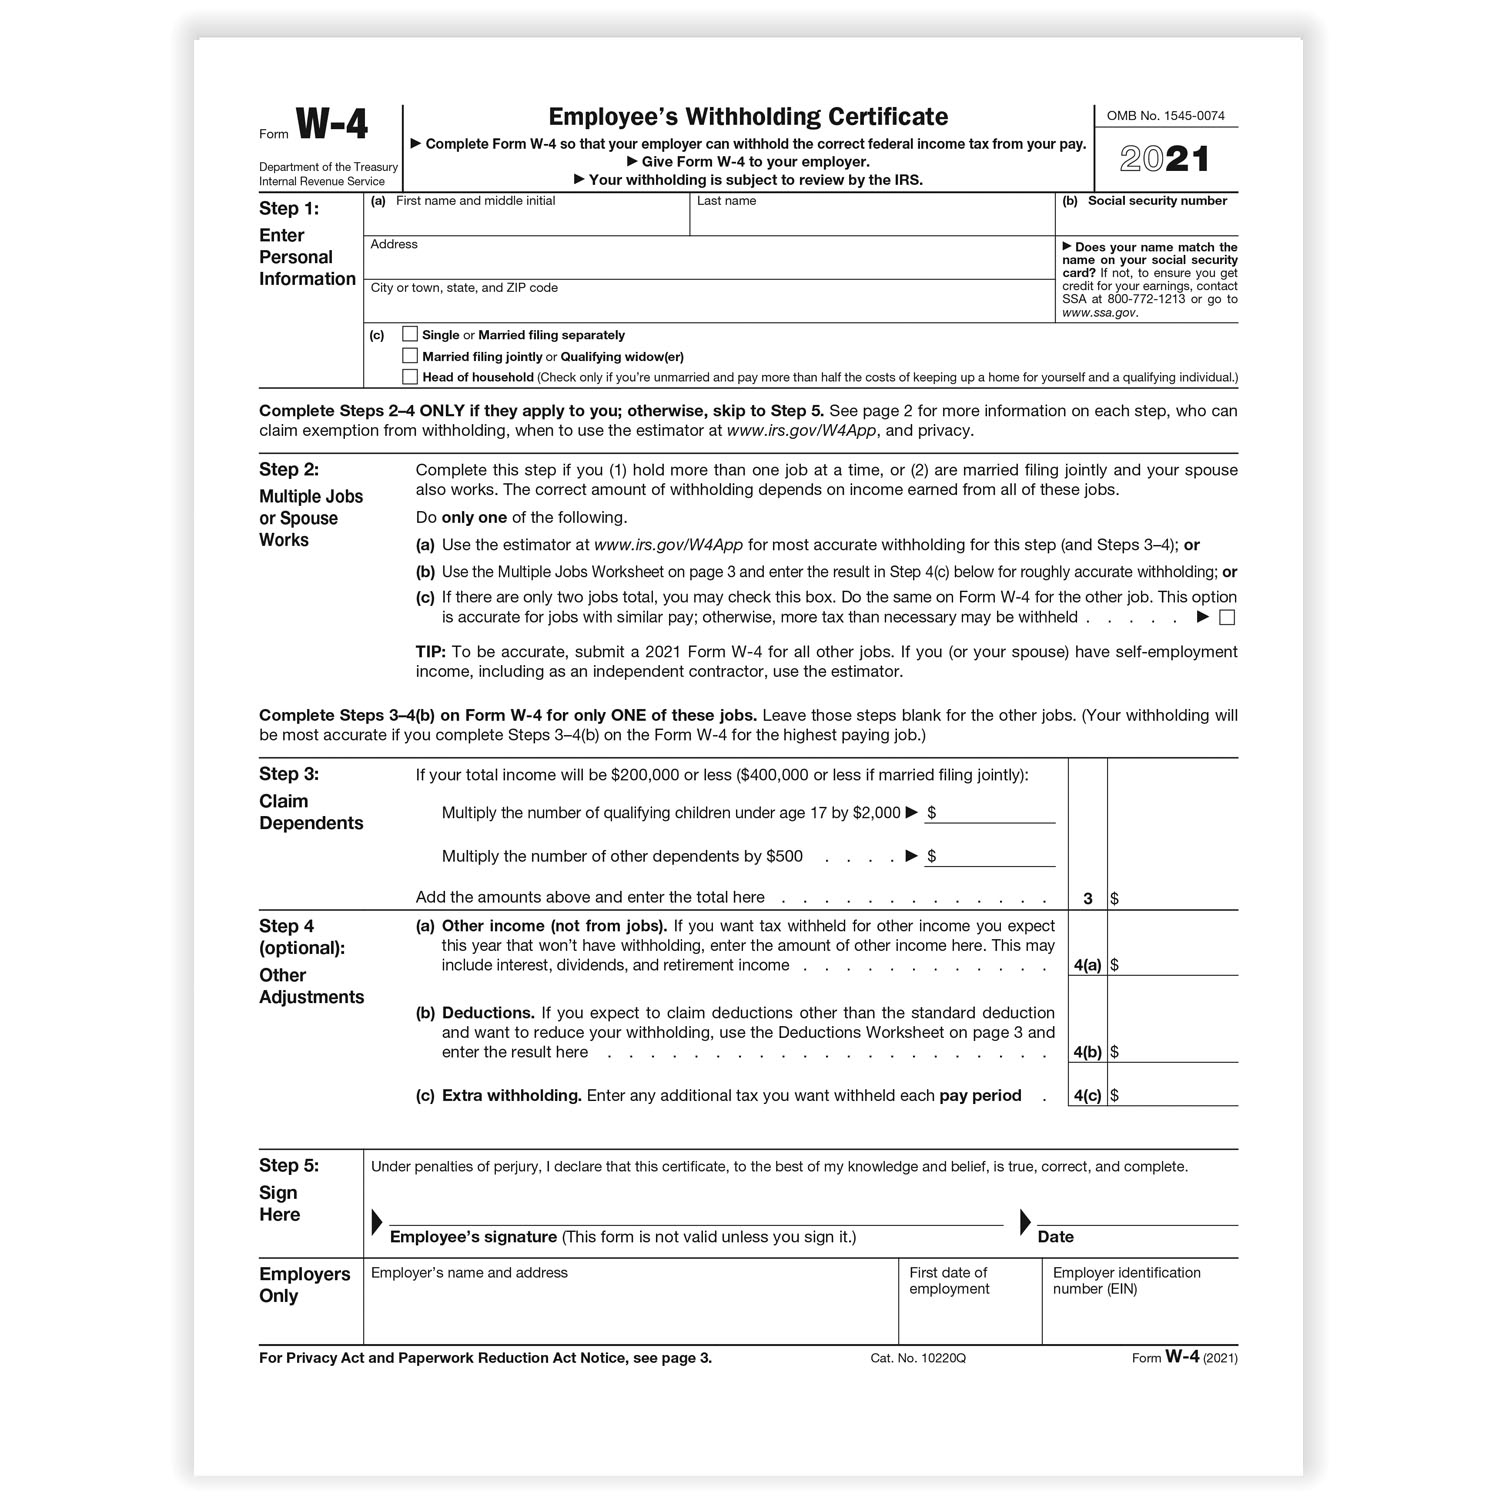 W-4 Forms